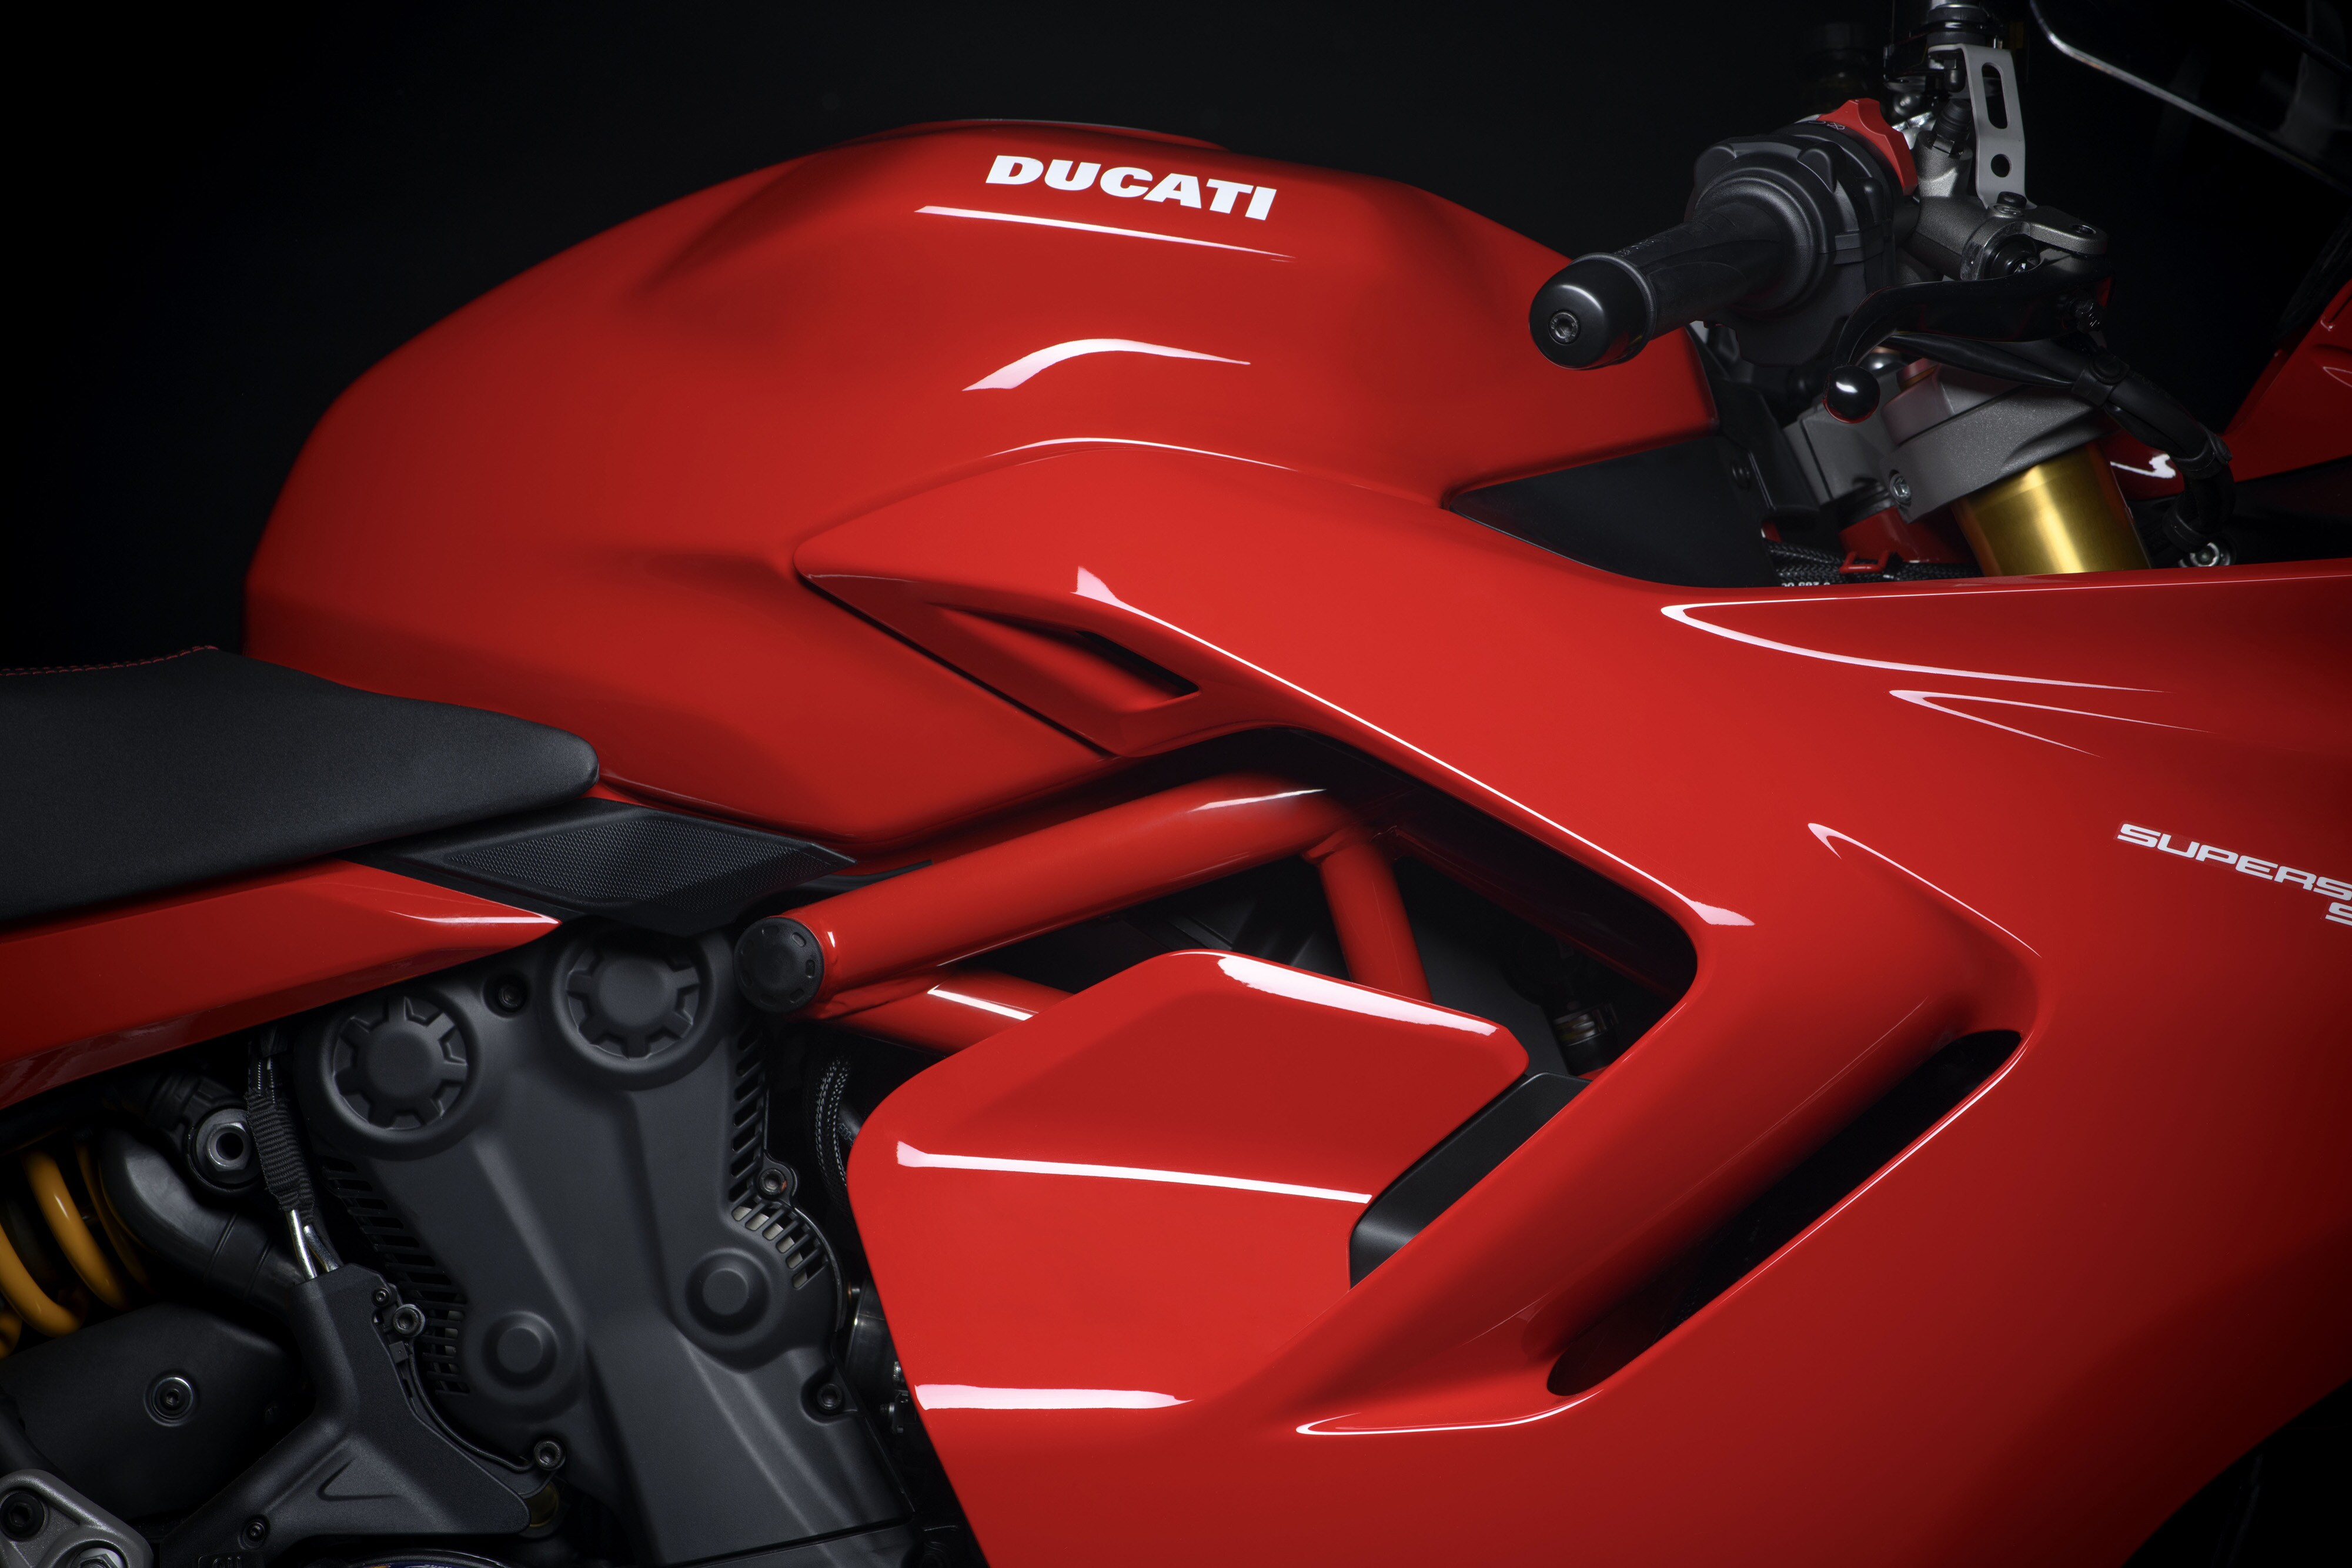 With the latest update, the 2021 Ducati SuperSport 950 has gained a new Euro5/BS 6-compliant engine, redesigned exterior looks, and new features.